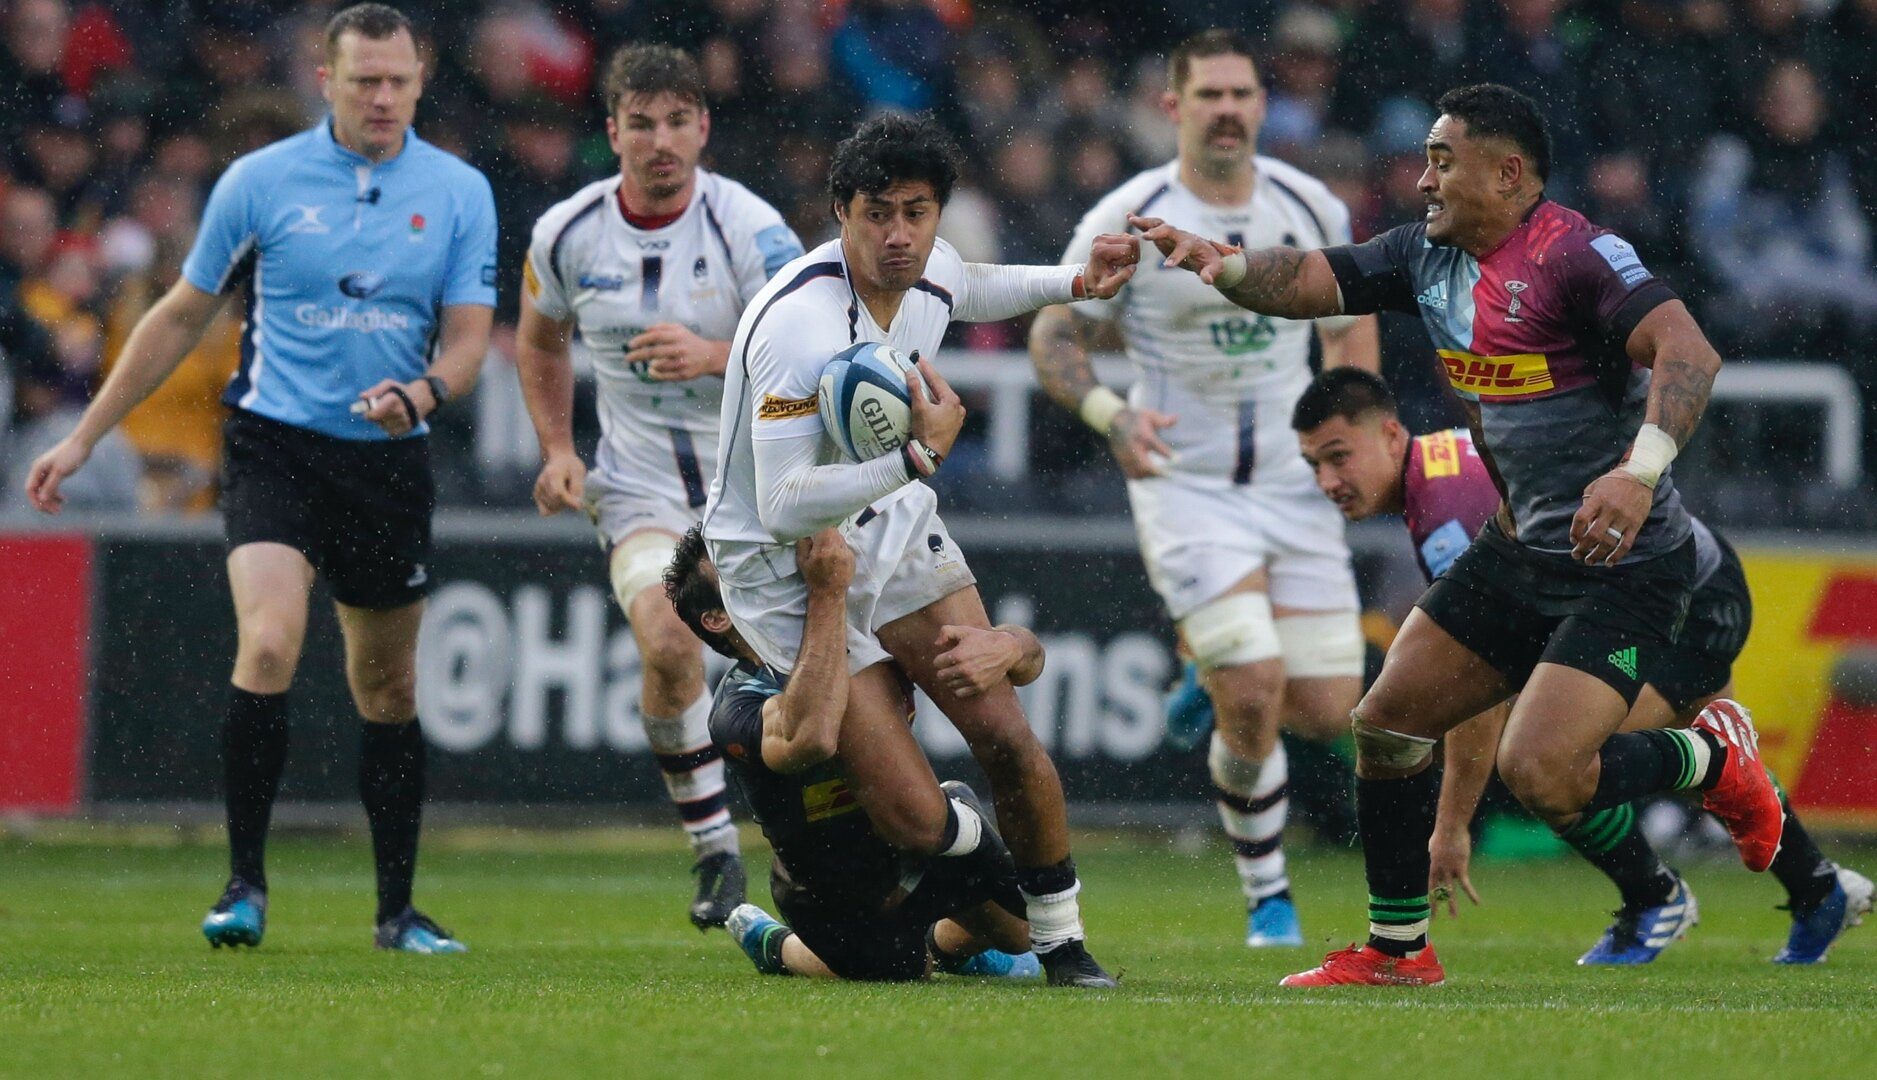 'X-Factor player' Nanai commits to Worcester until 2023 after difficult first season